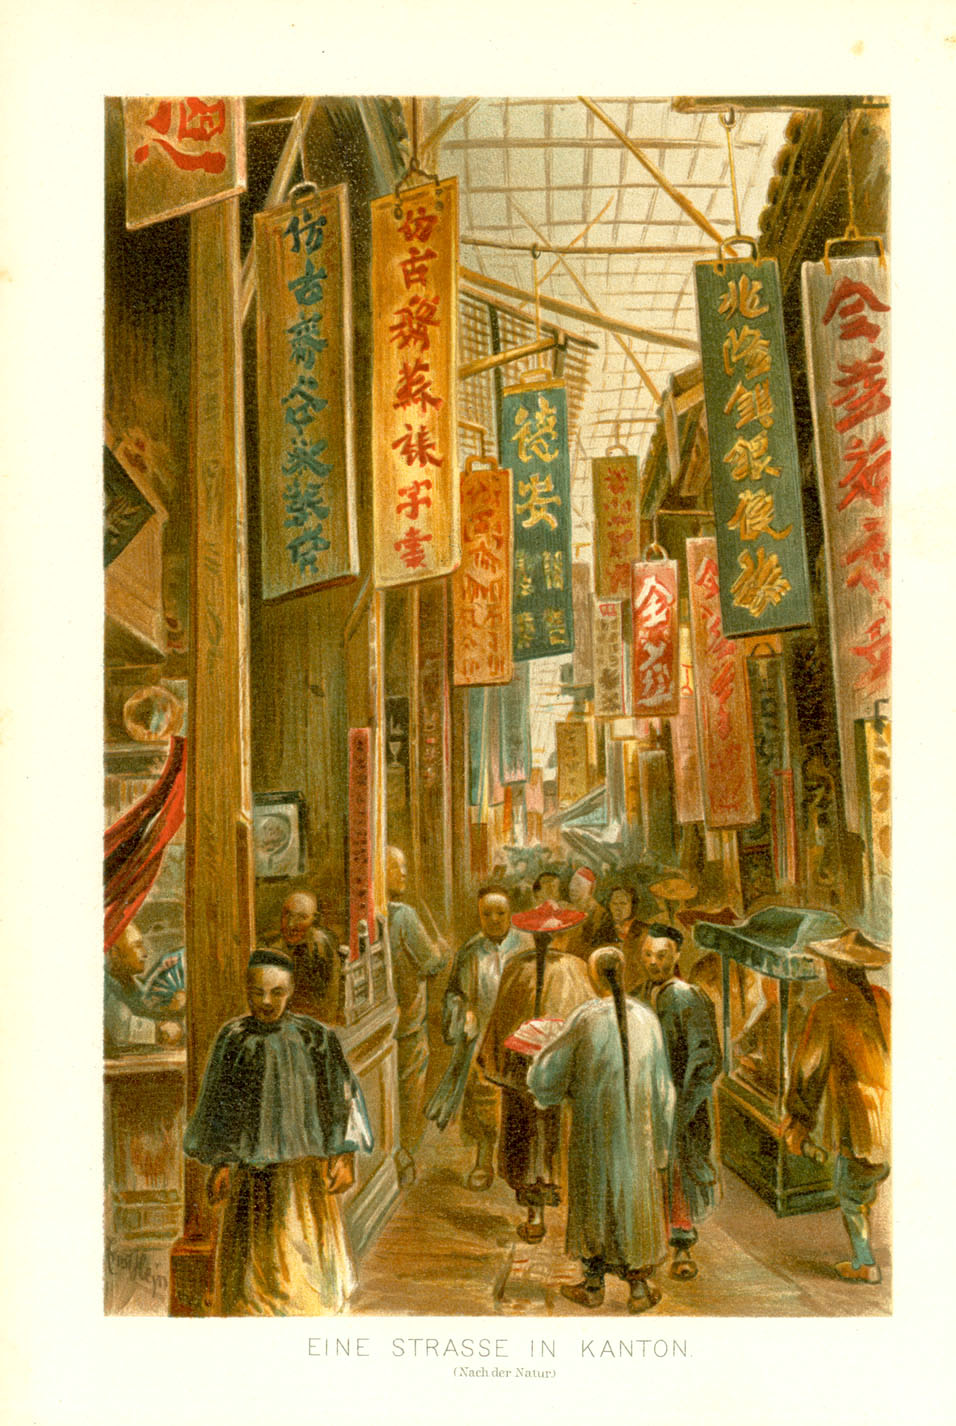 """Eine Strasse in Kanton""  Chromolithograph published 1890."